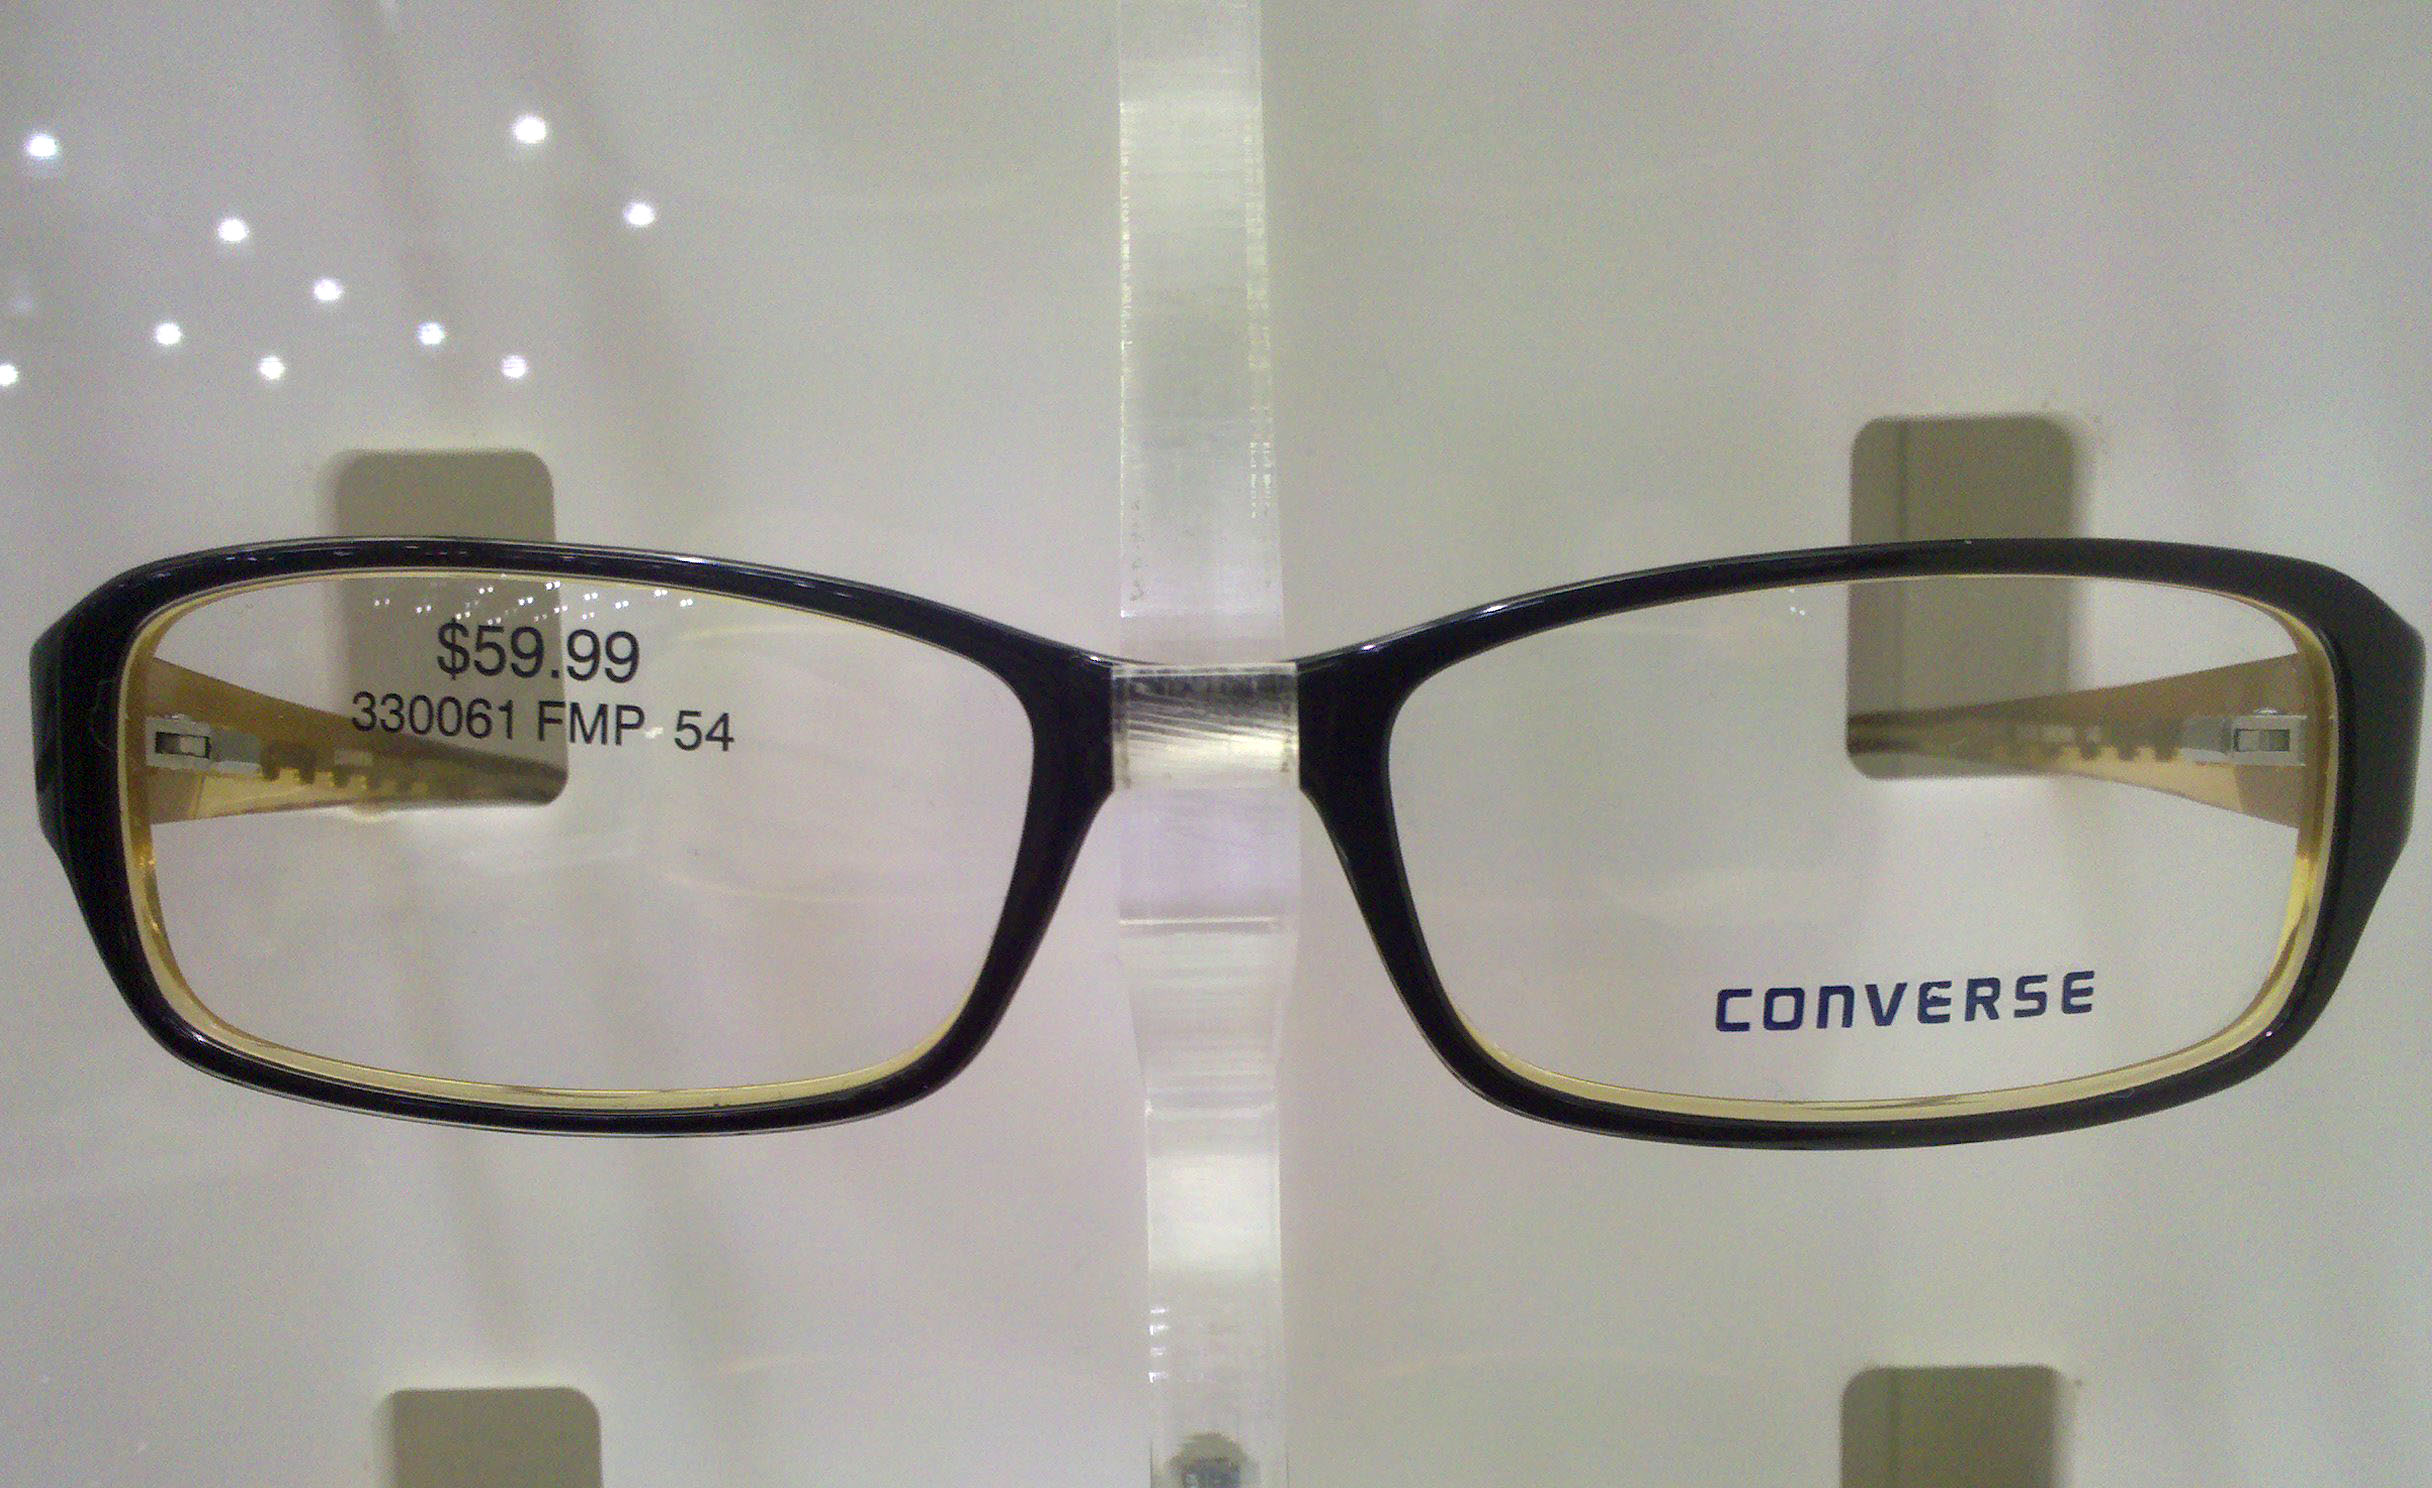 Eyeglass frames and lenses pricing COSTCO vs private OPTOMETRISTS